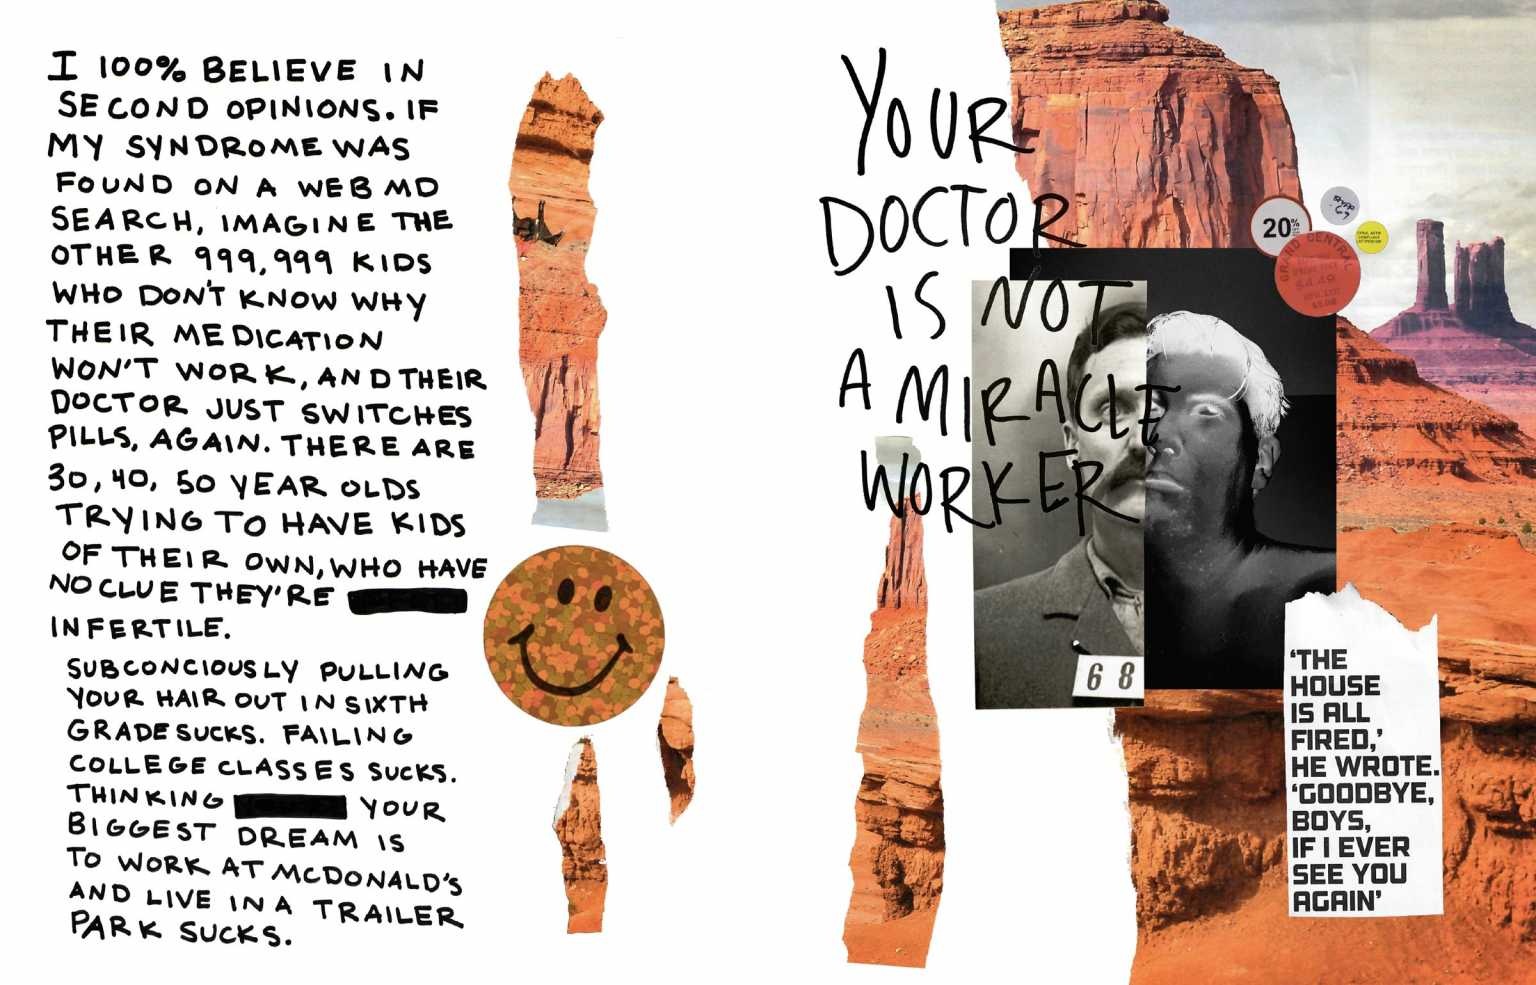 Spread from Misdiagnosis